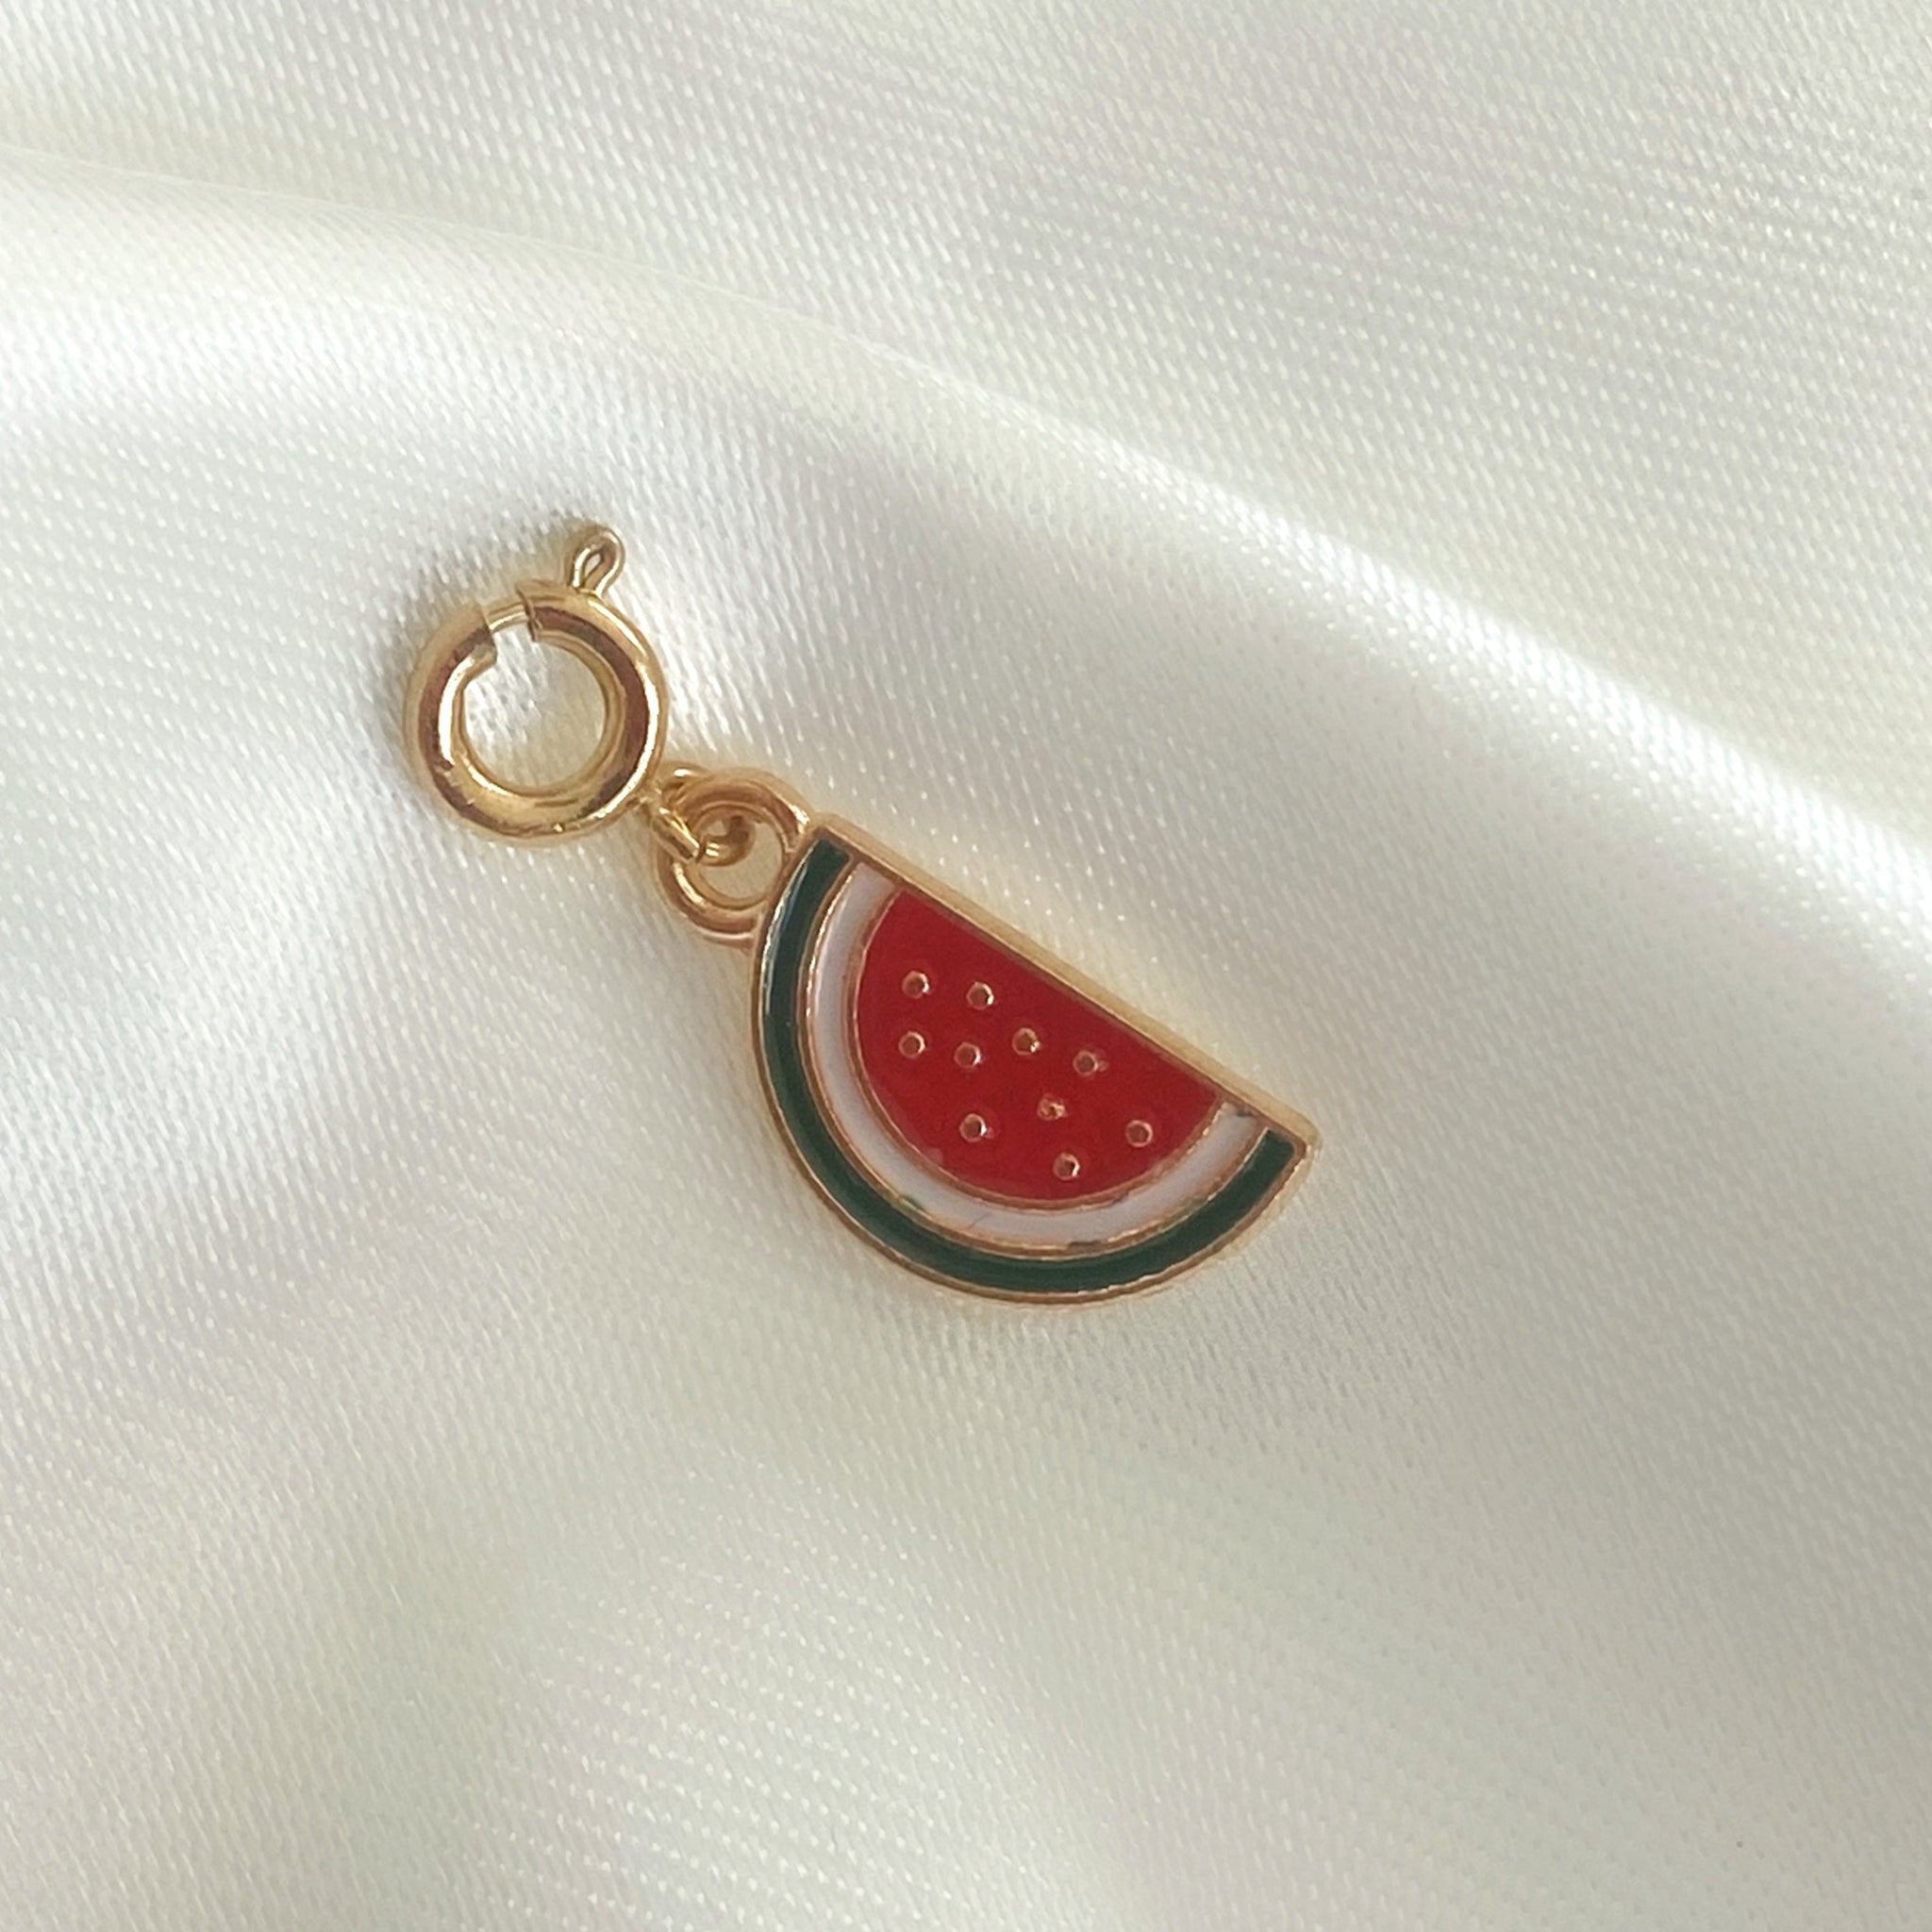 NEW ! Charm Love Watermelon